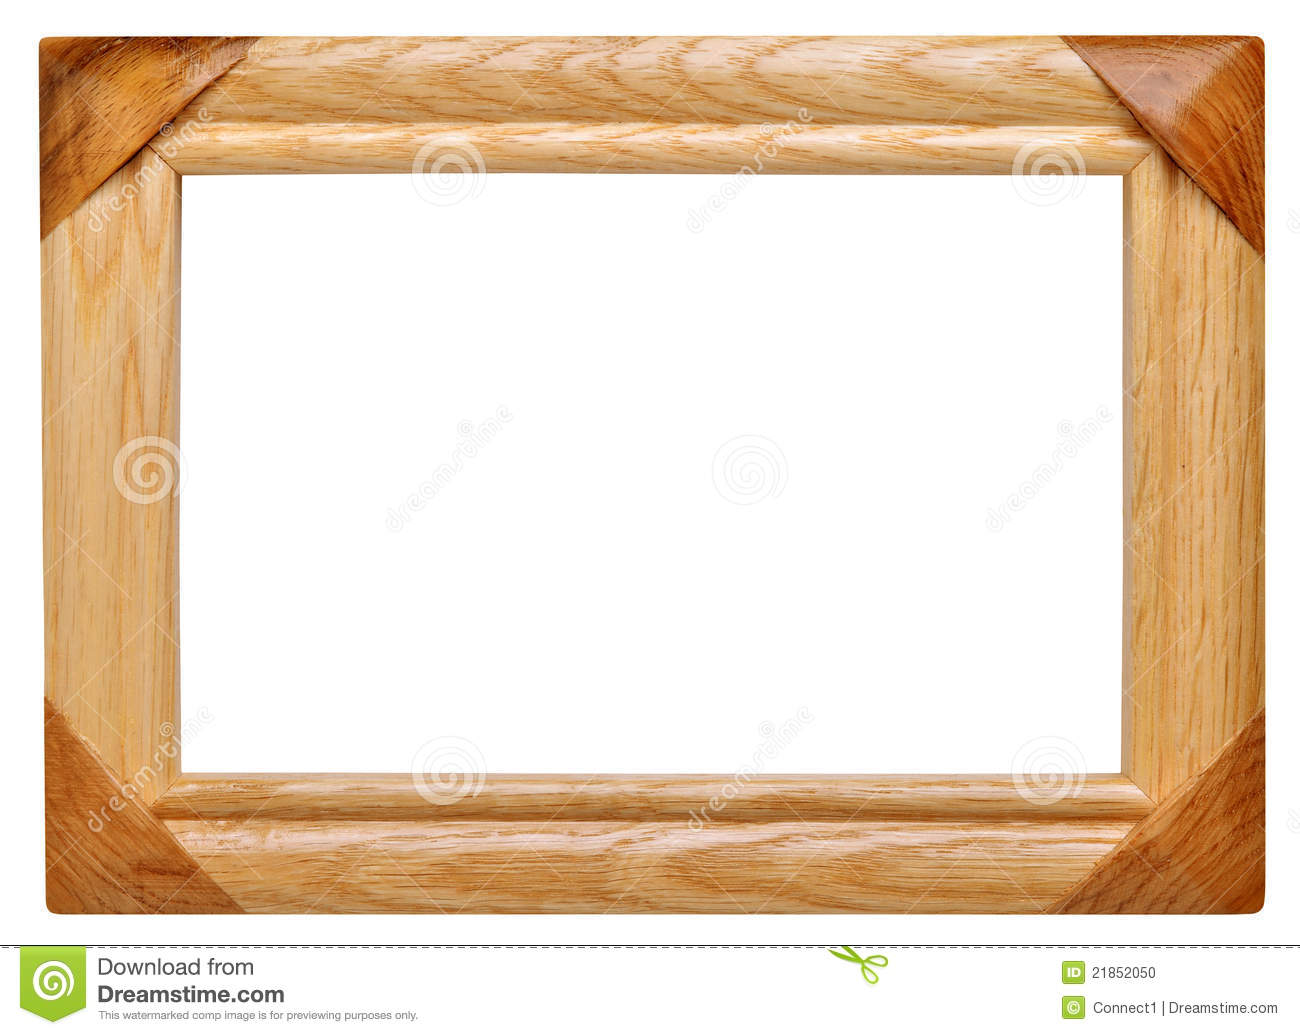 Frame made of wood stock photo. Image of exhibition - 21852050